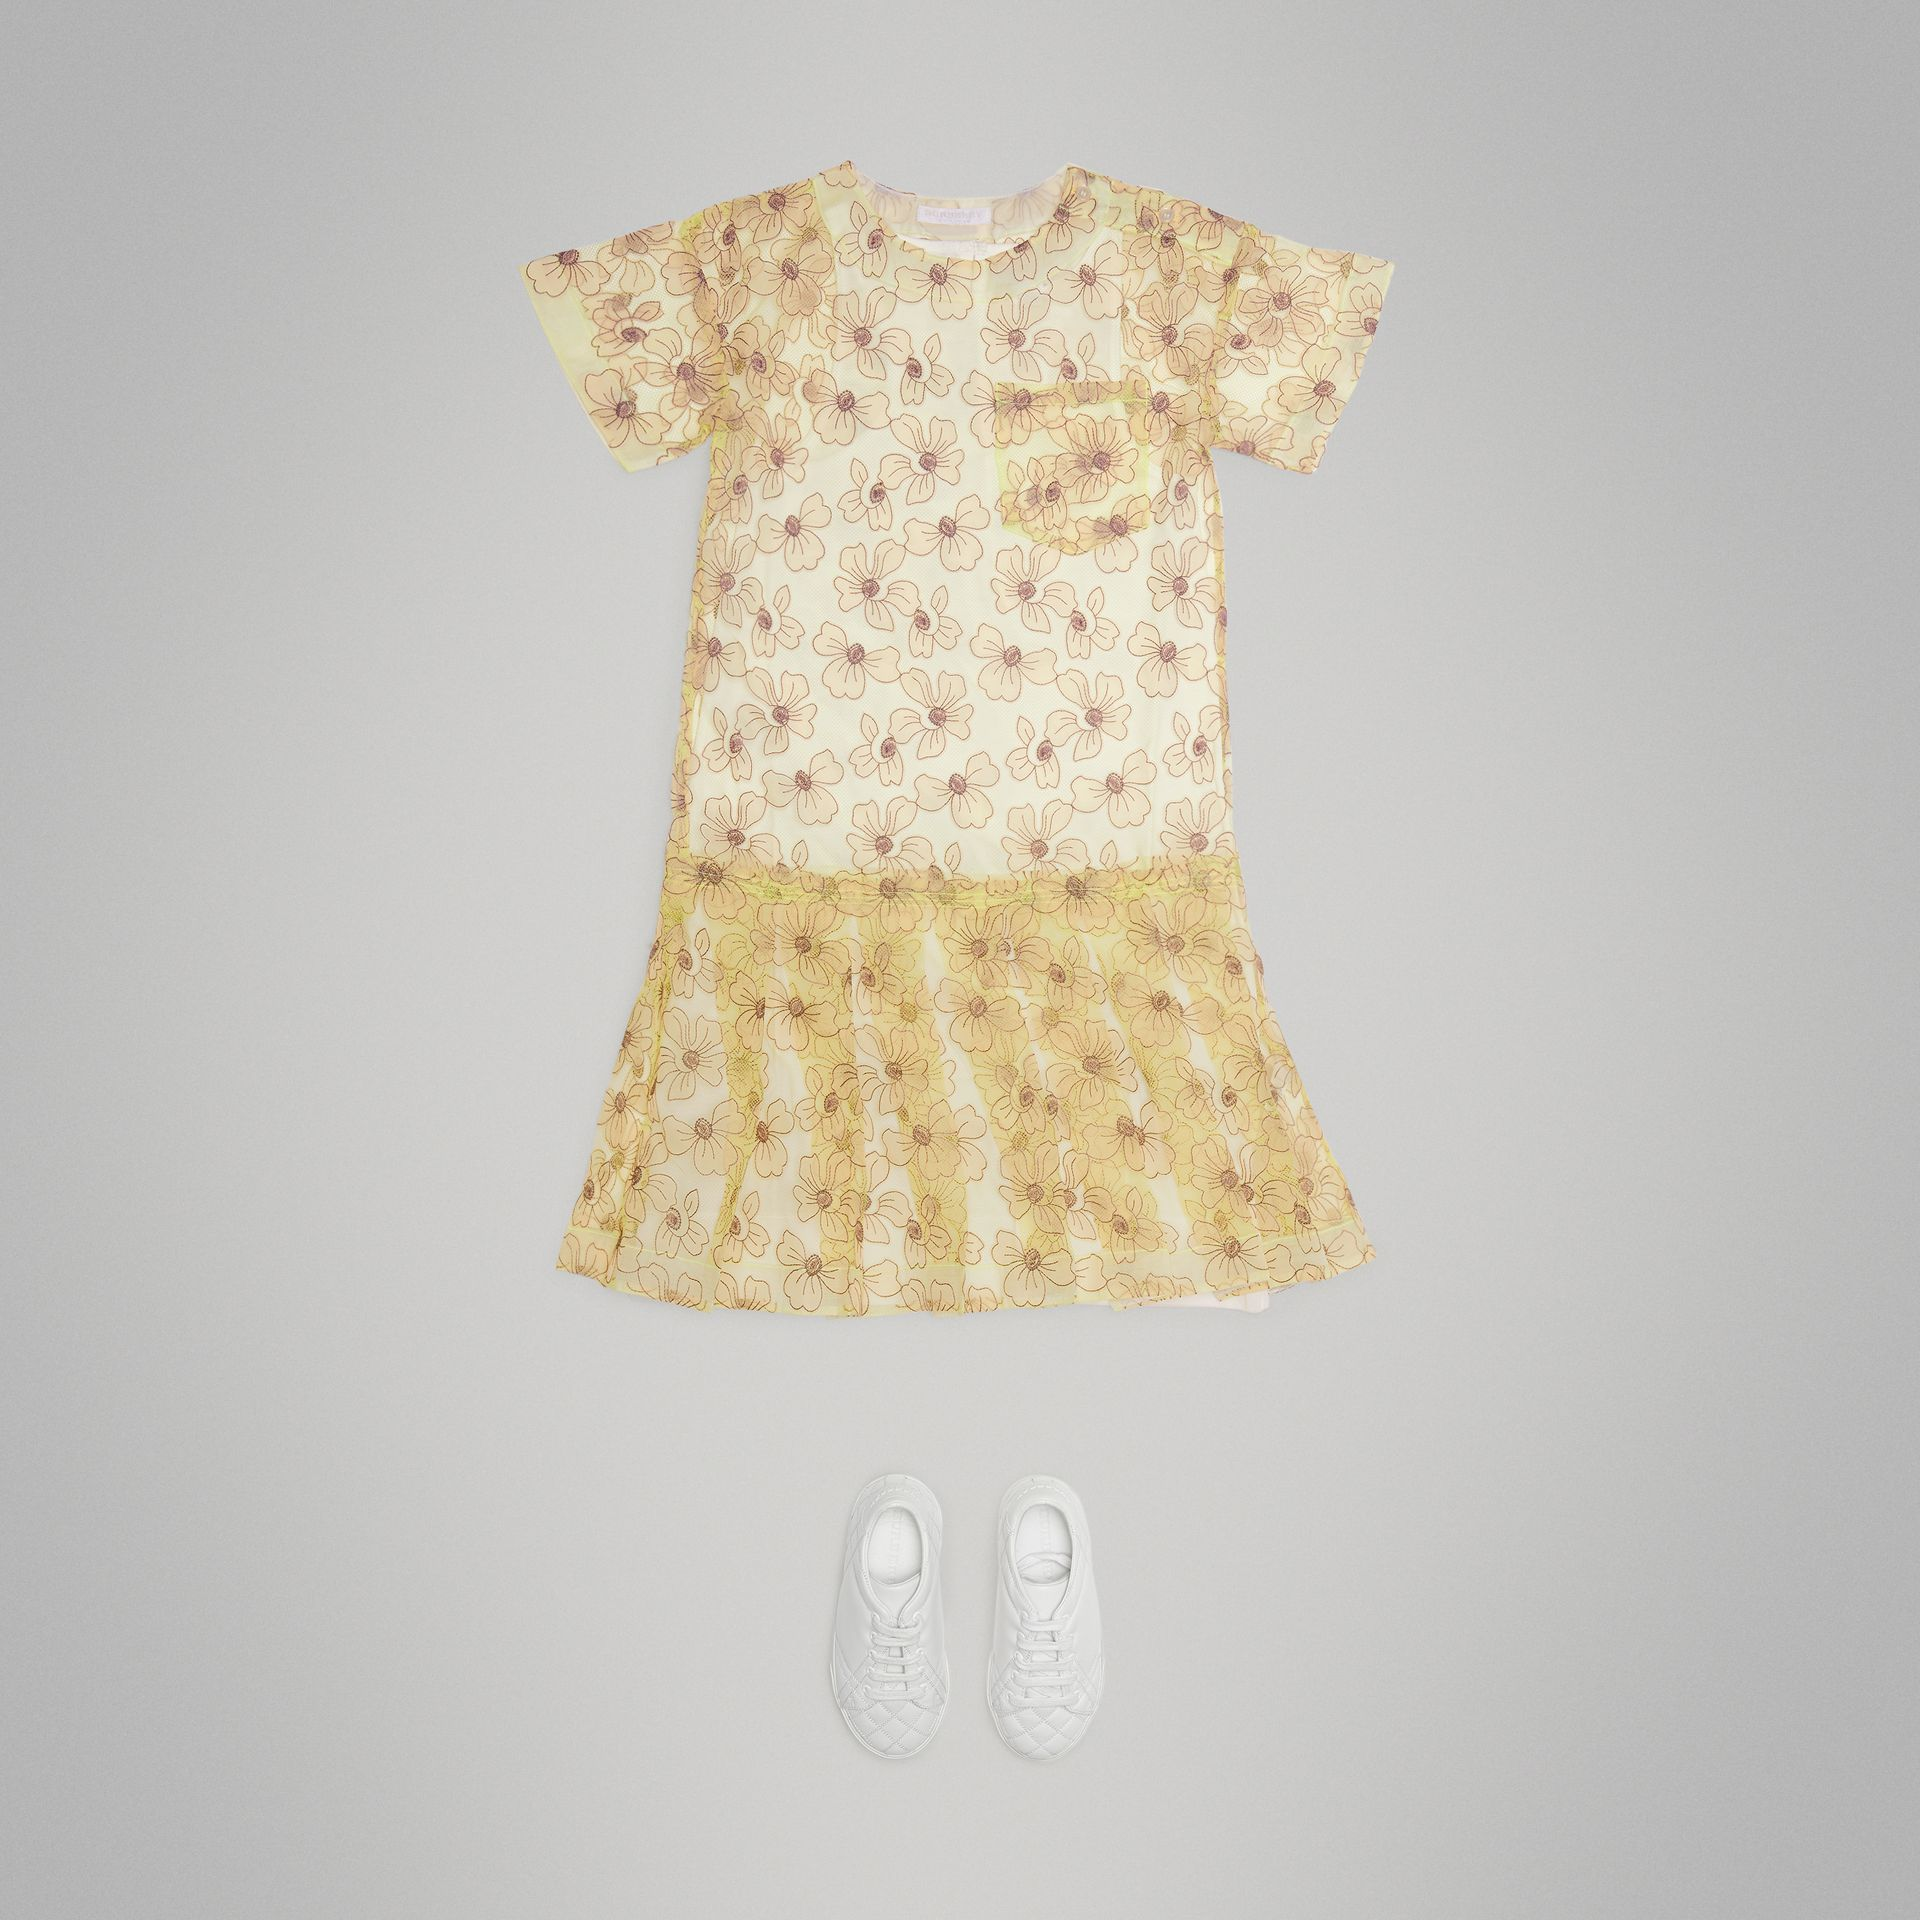 Floral Appliqué Tulle Dress in Citrus Yellow - Children | Burberry - gallery image 2